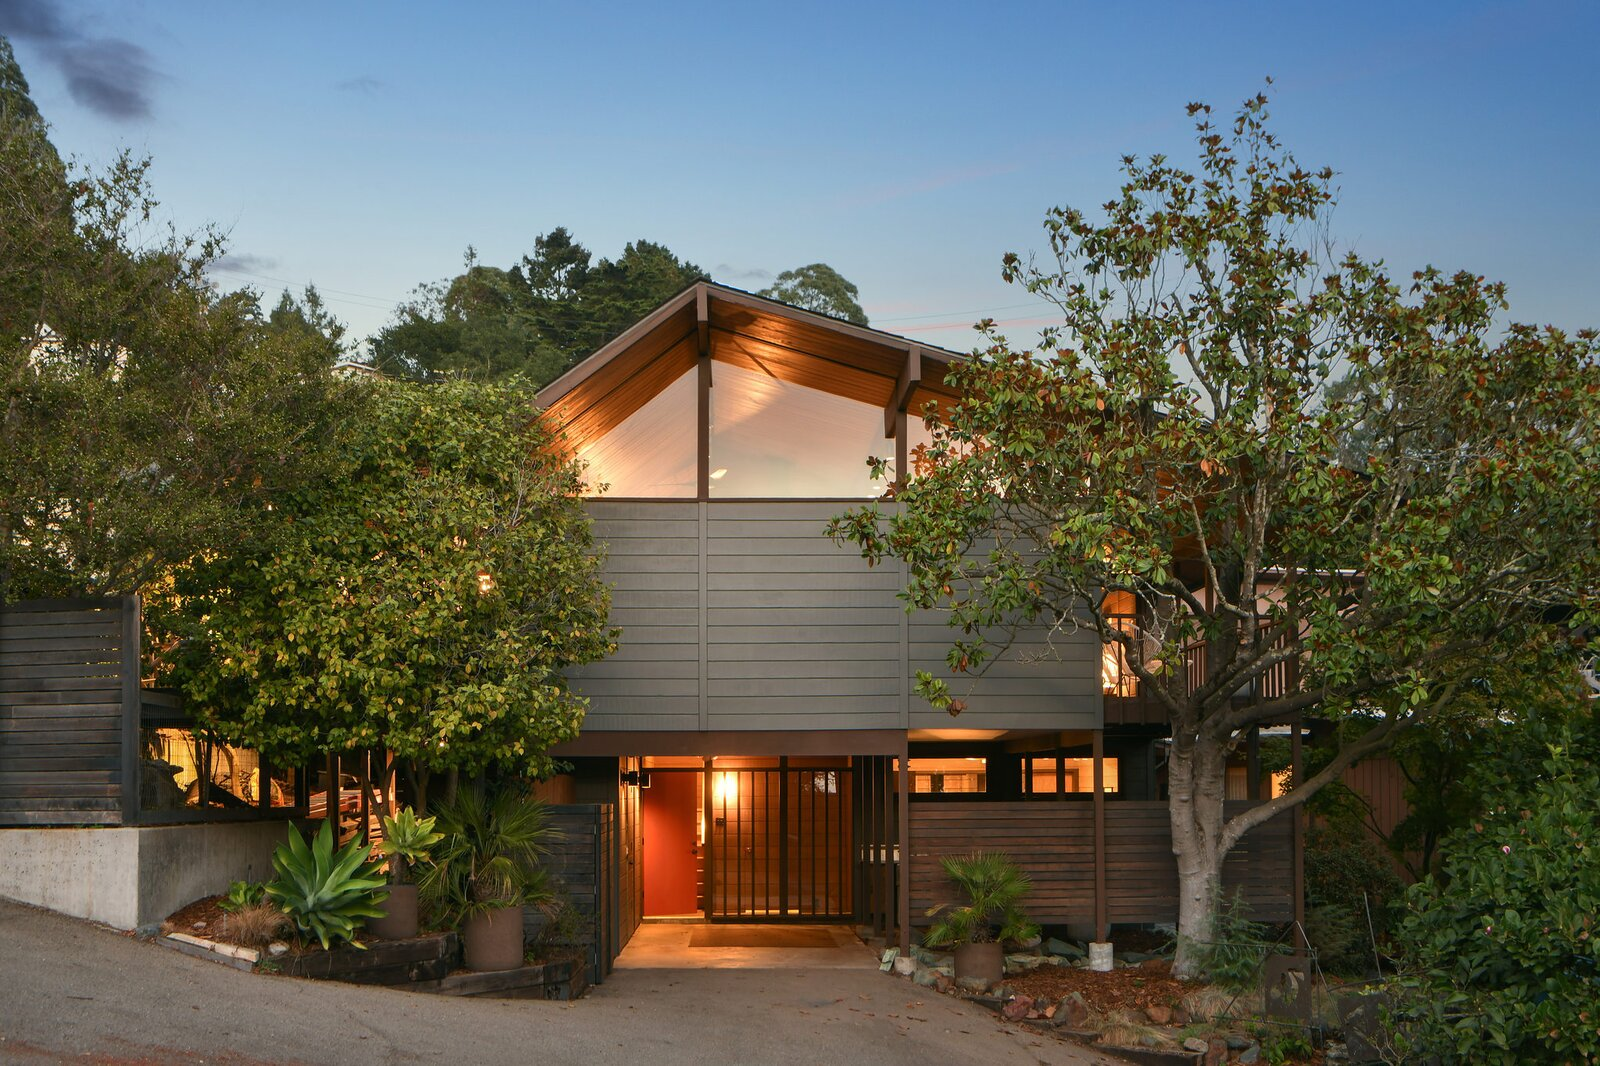 Exterior of the Hargrove Residence by Roger Lee